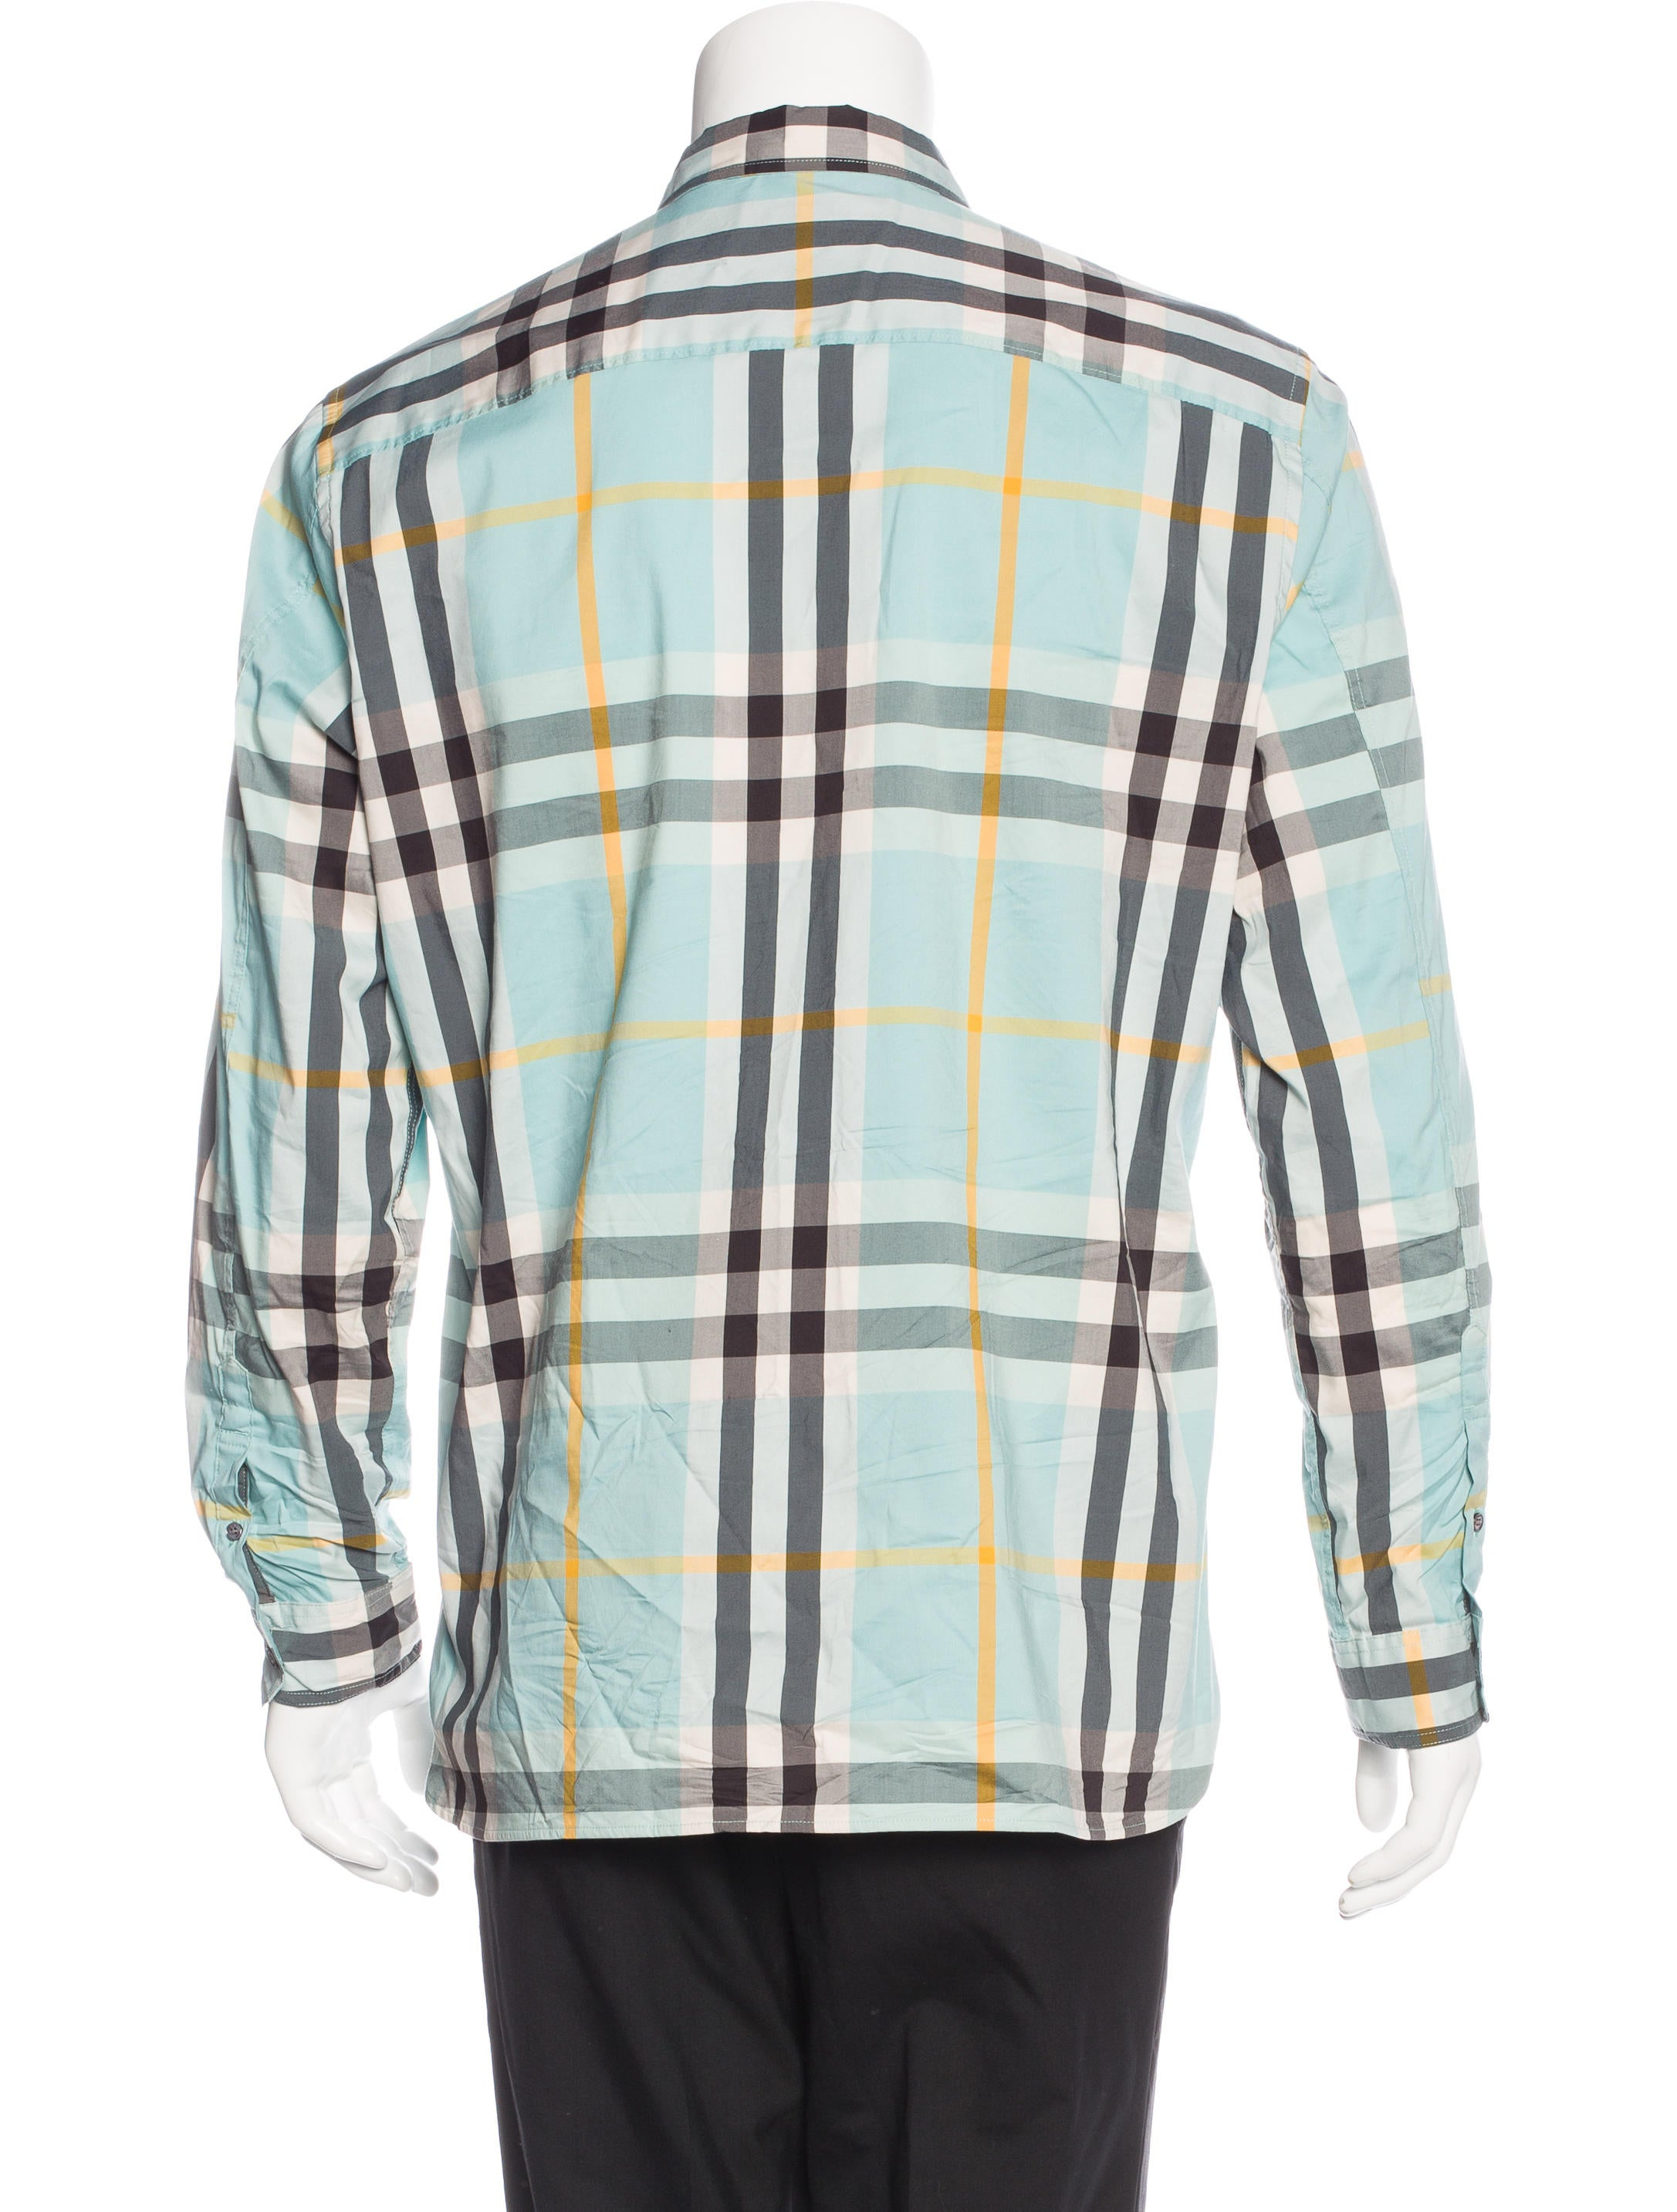 Burberry brit plaid woven shirt clothing bbr27131 for Burberry brit green plaid shirt